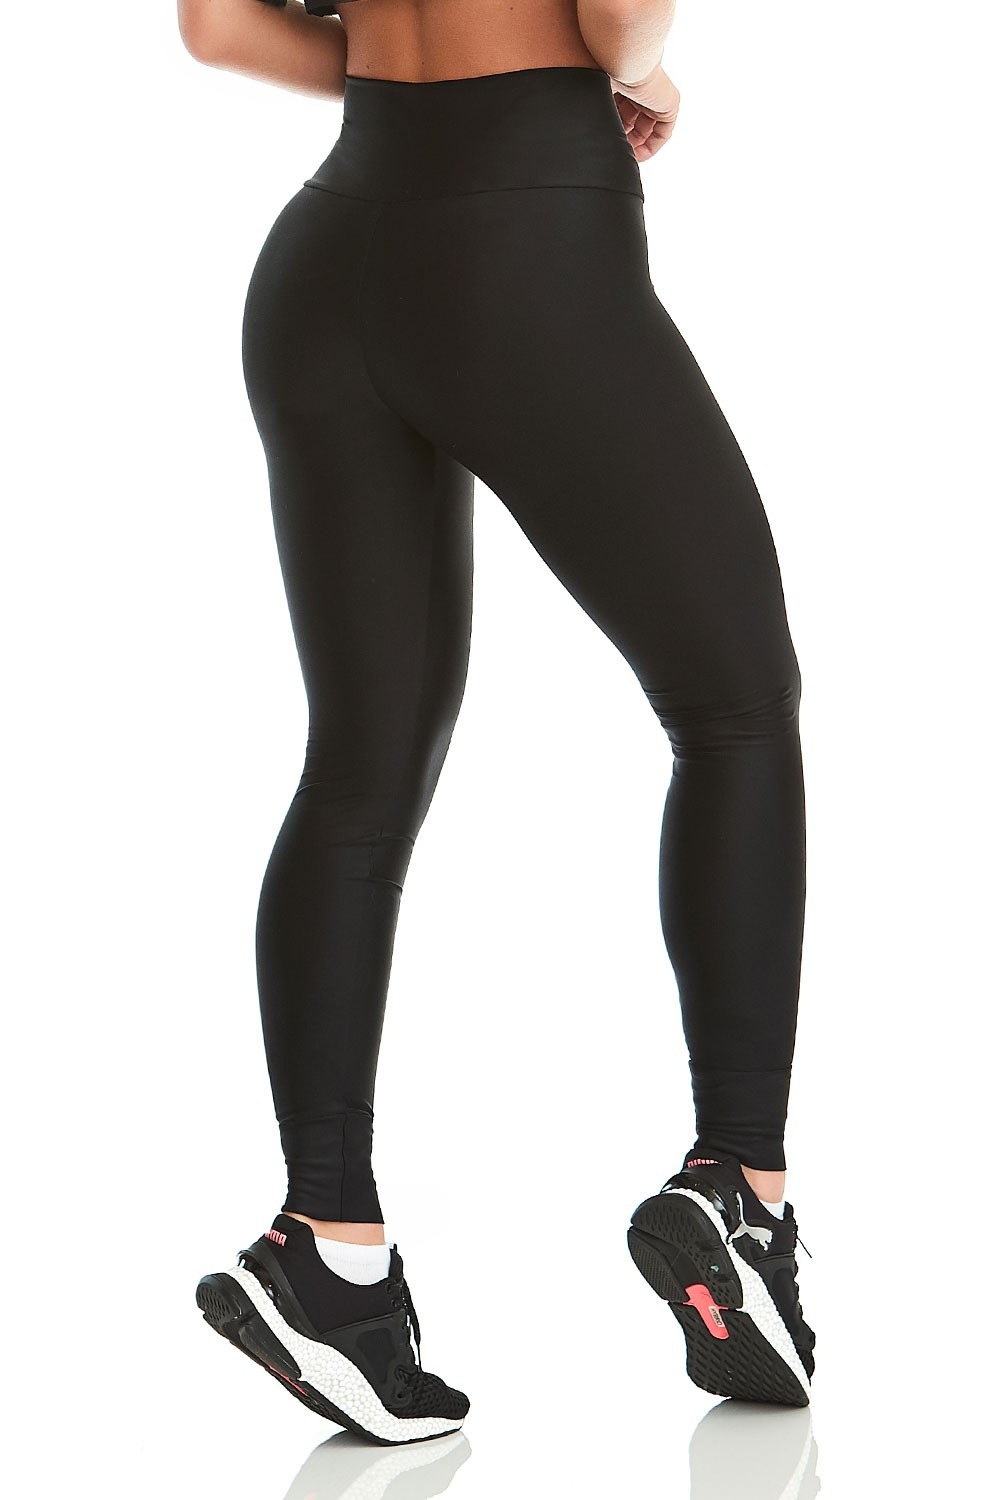 LEGGING ATLETIKA DARLING CAJUBRASIL